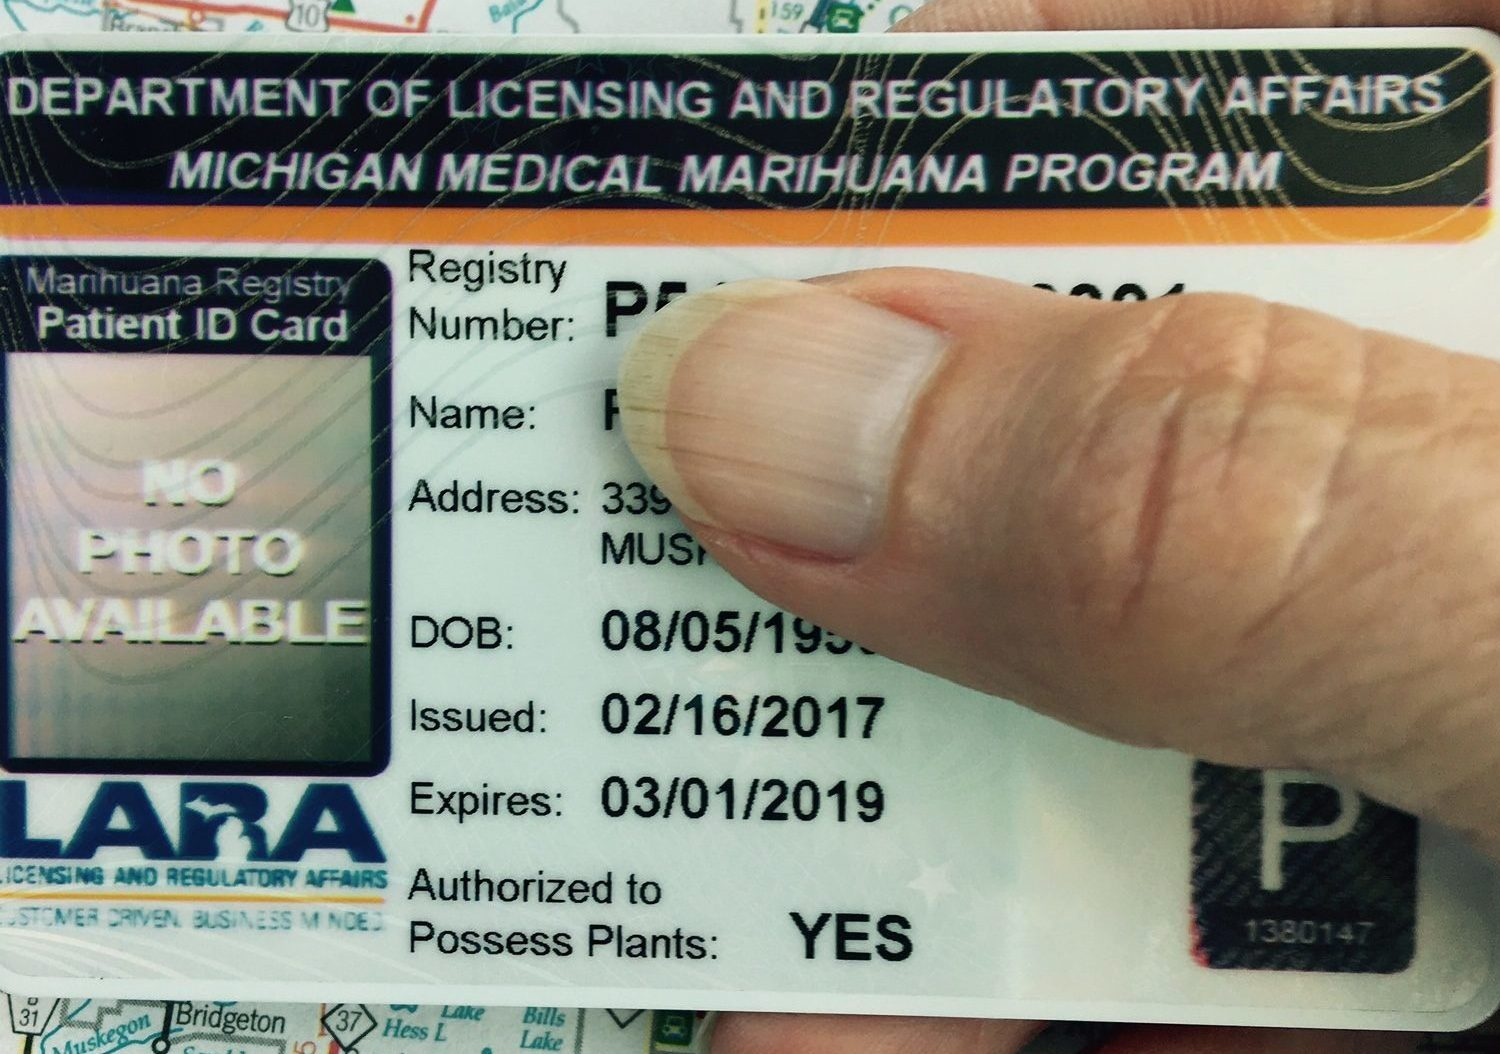 A Michigan Medical Marijuana card